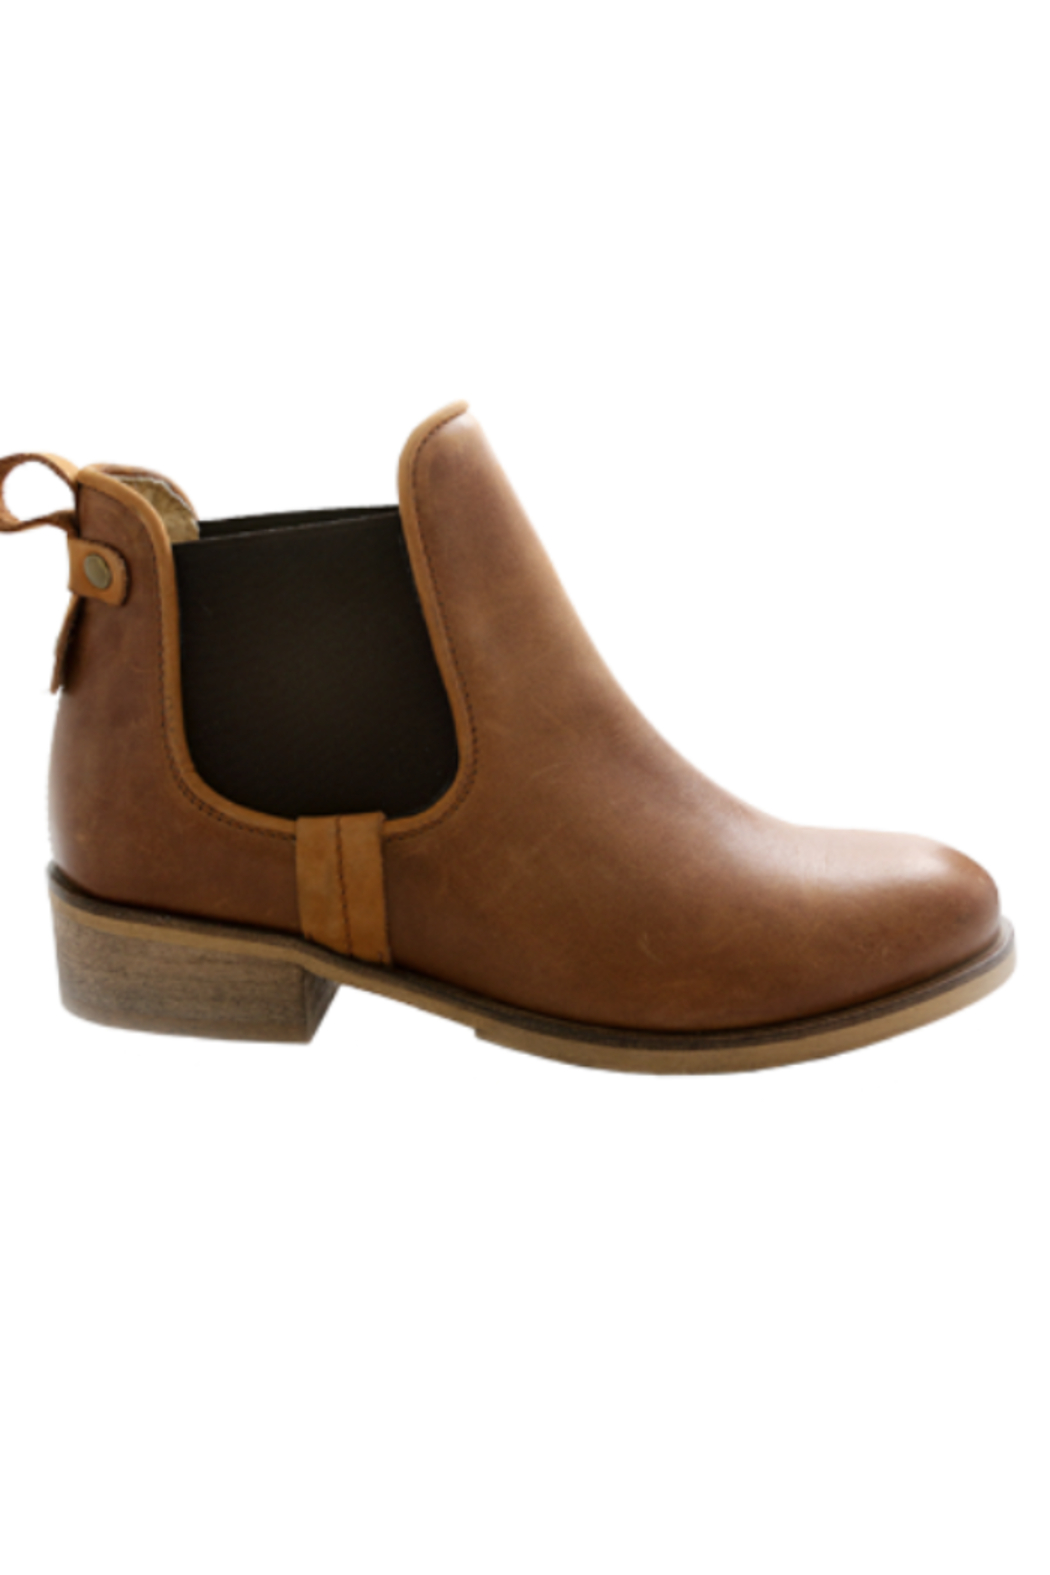 Mark Jenkins Bruno Suede Boot- Tan Leather - Main Image